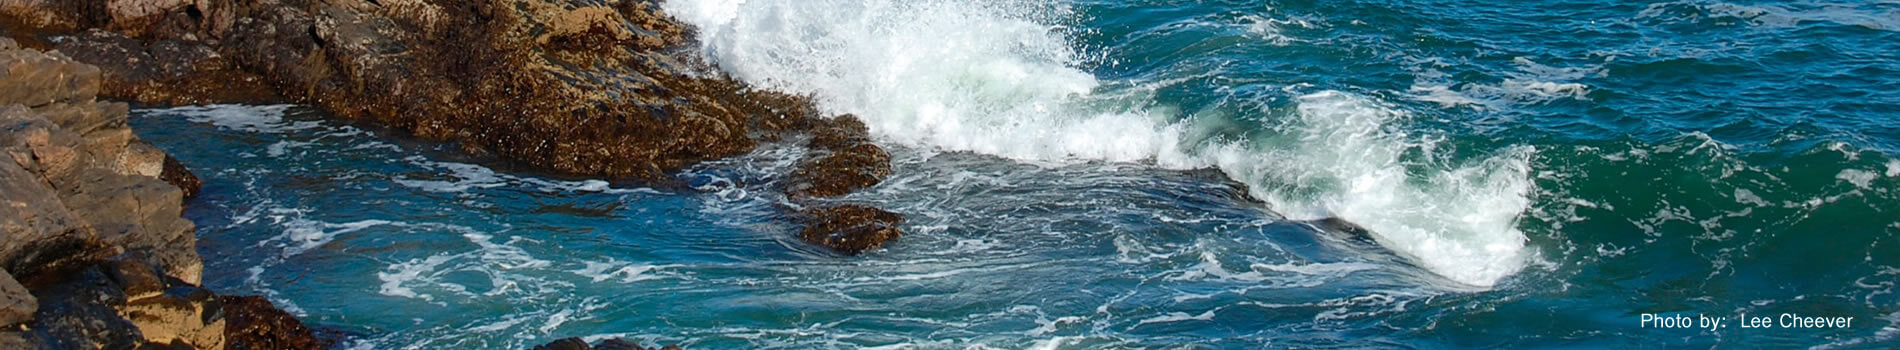 Banner image for Resource Partners section of the website.  Image is of waves crashing on rocks.